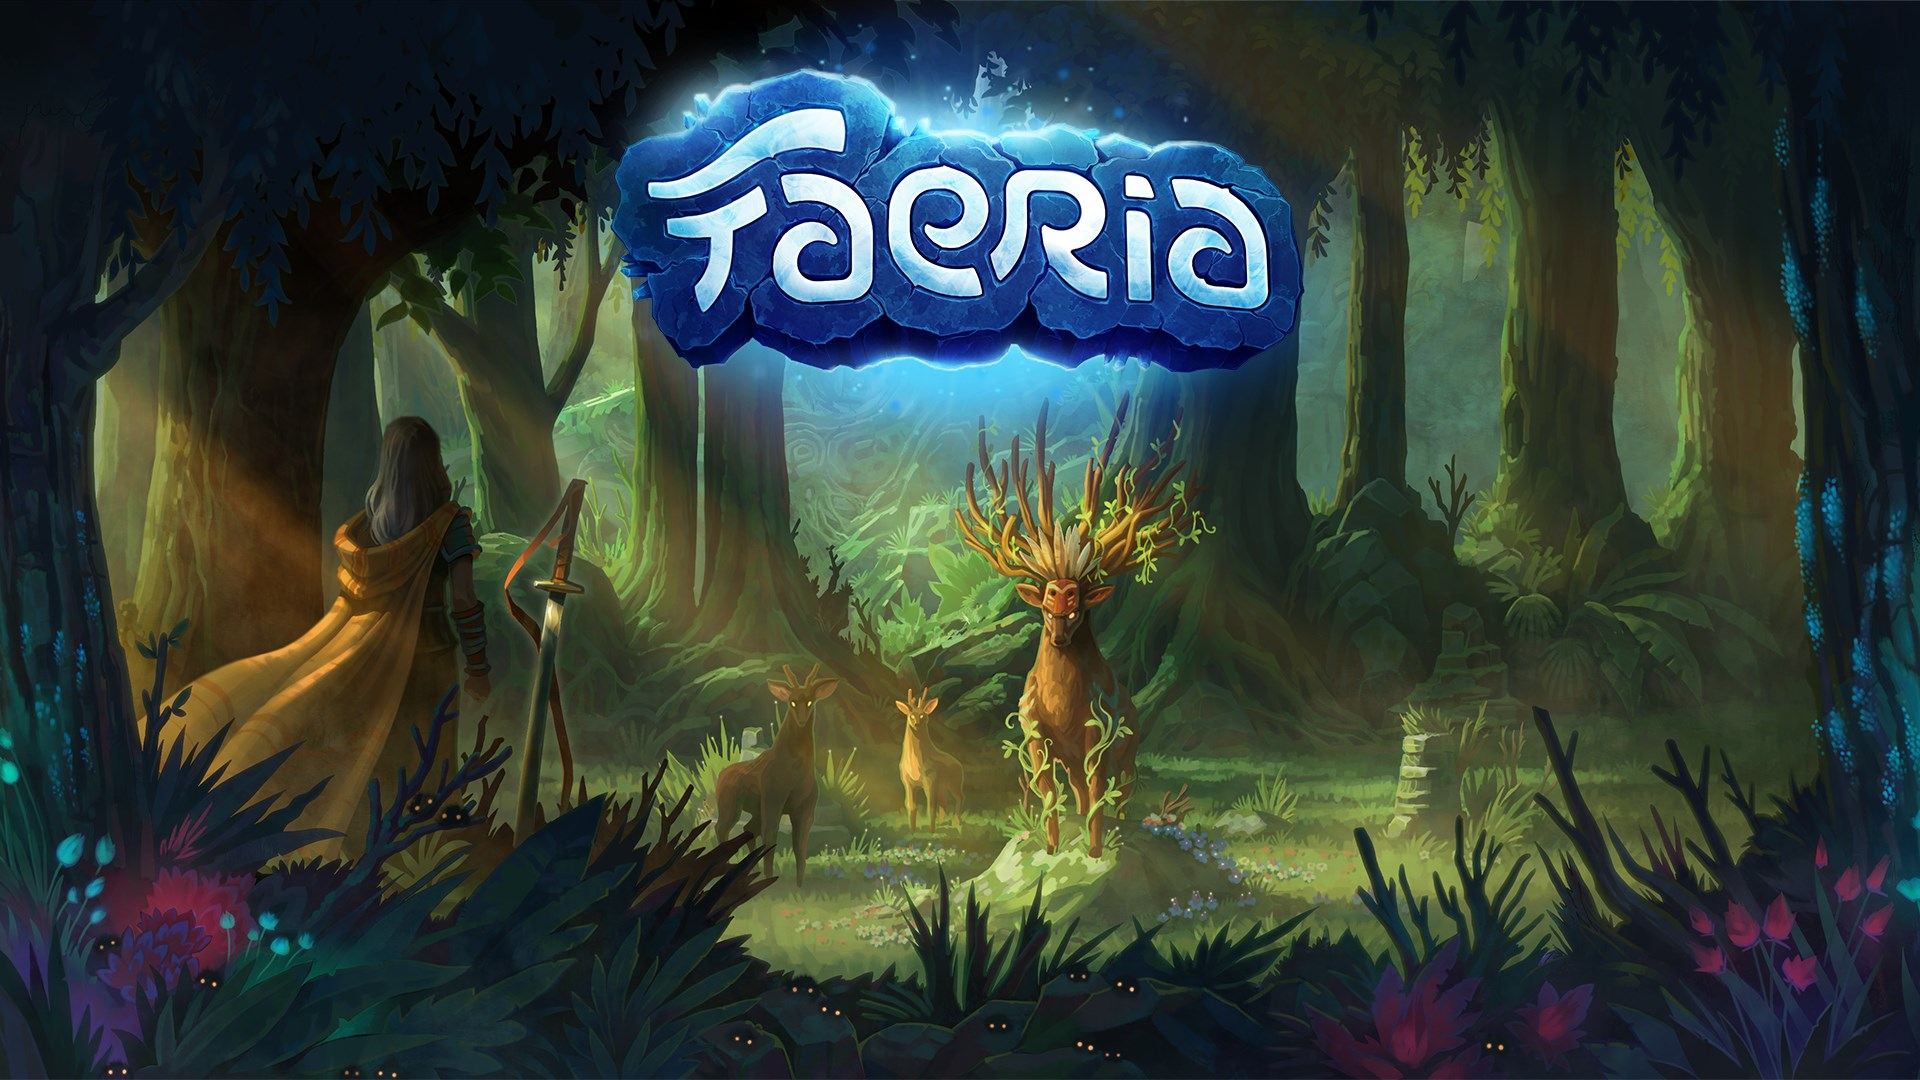 A screenshot from this week's spotlighted game [Faeria]